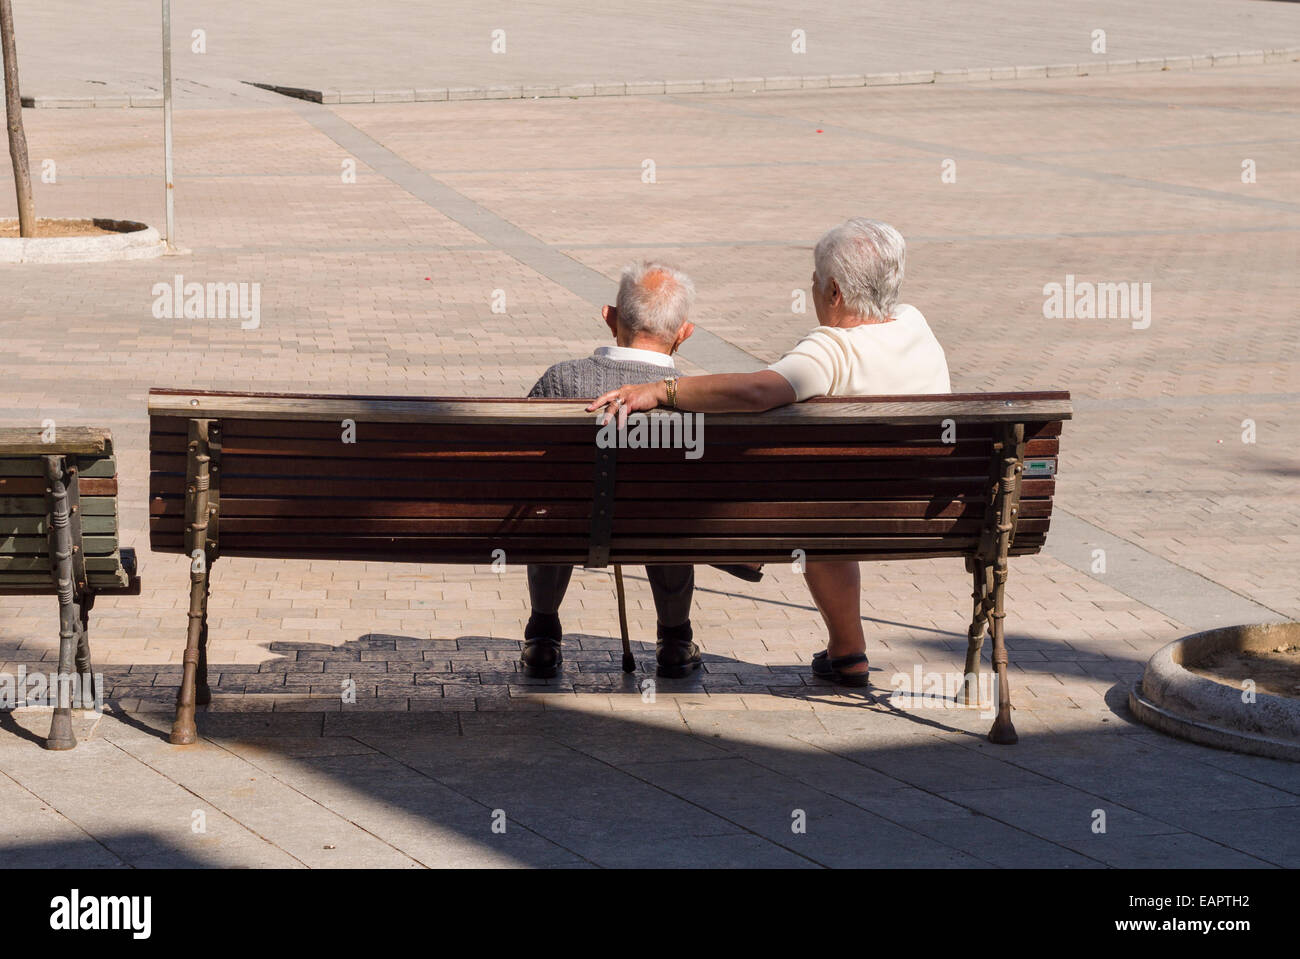 Taking a Rest Break on a bench. A older couple with white hair take a break on a bench in the central square of - Stock Image